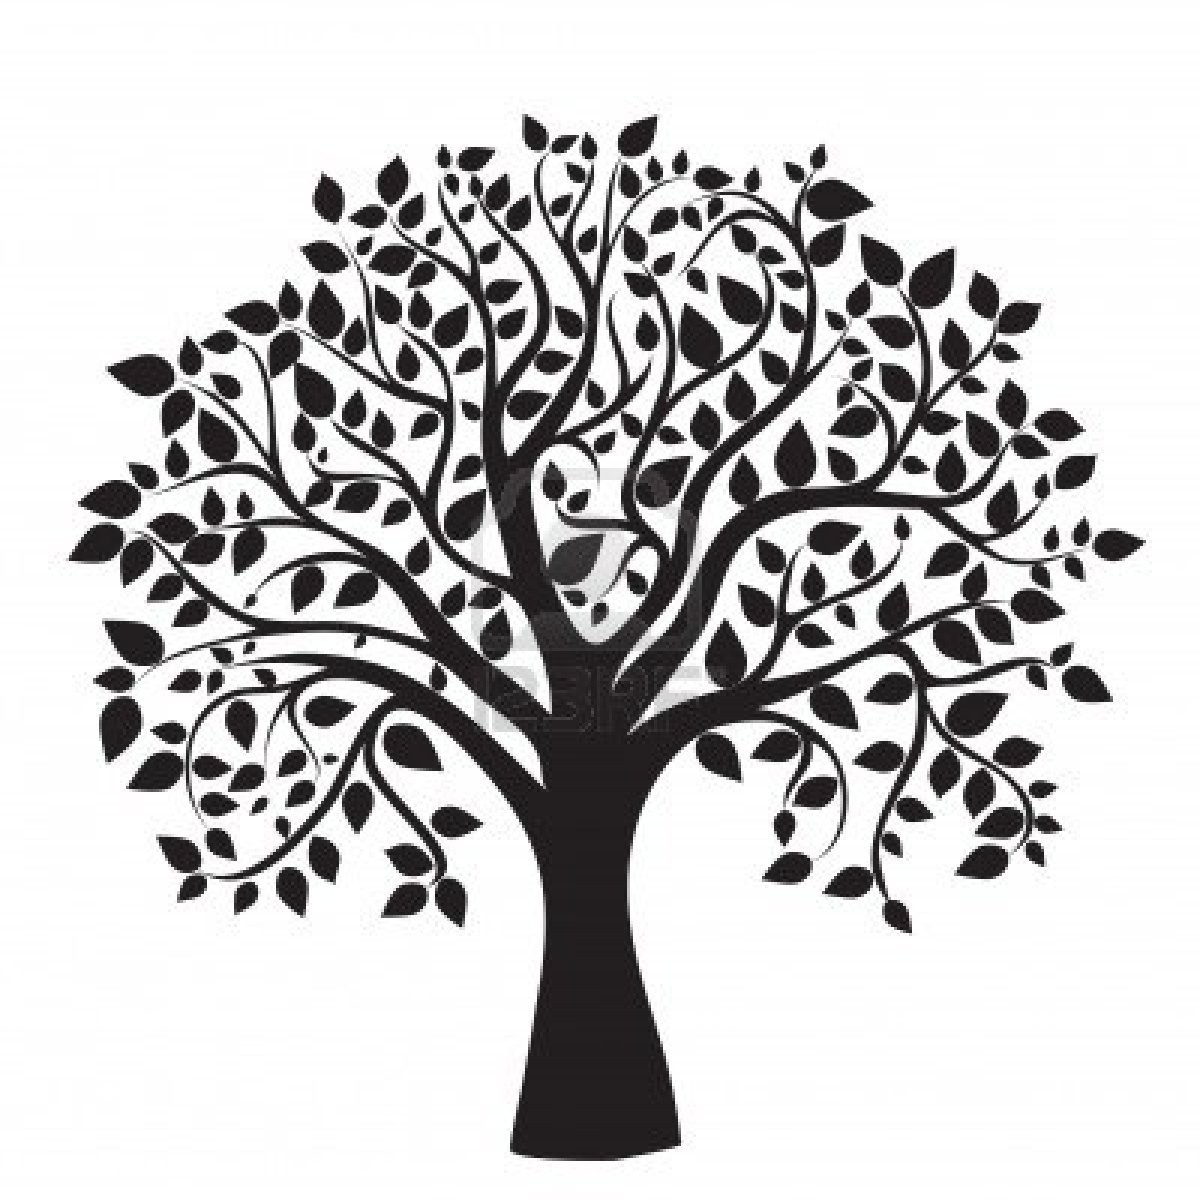 a8831e6f 1200x1200 Collection Of Free Genealogies Clipart Magnolia Tree. Download On